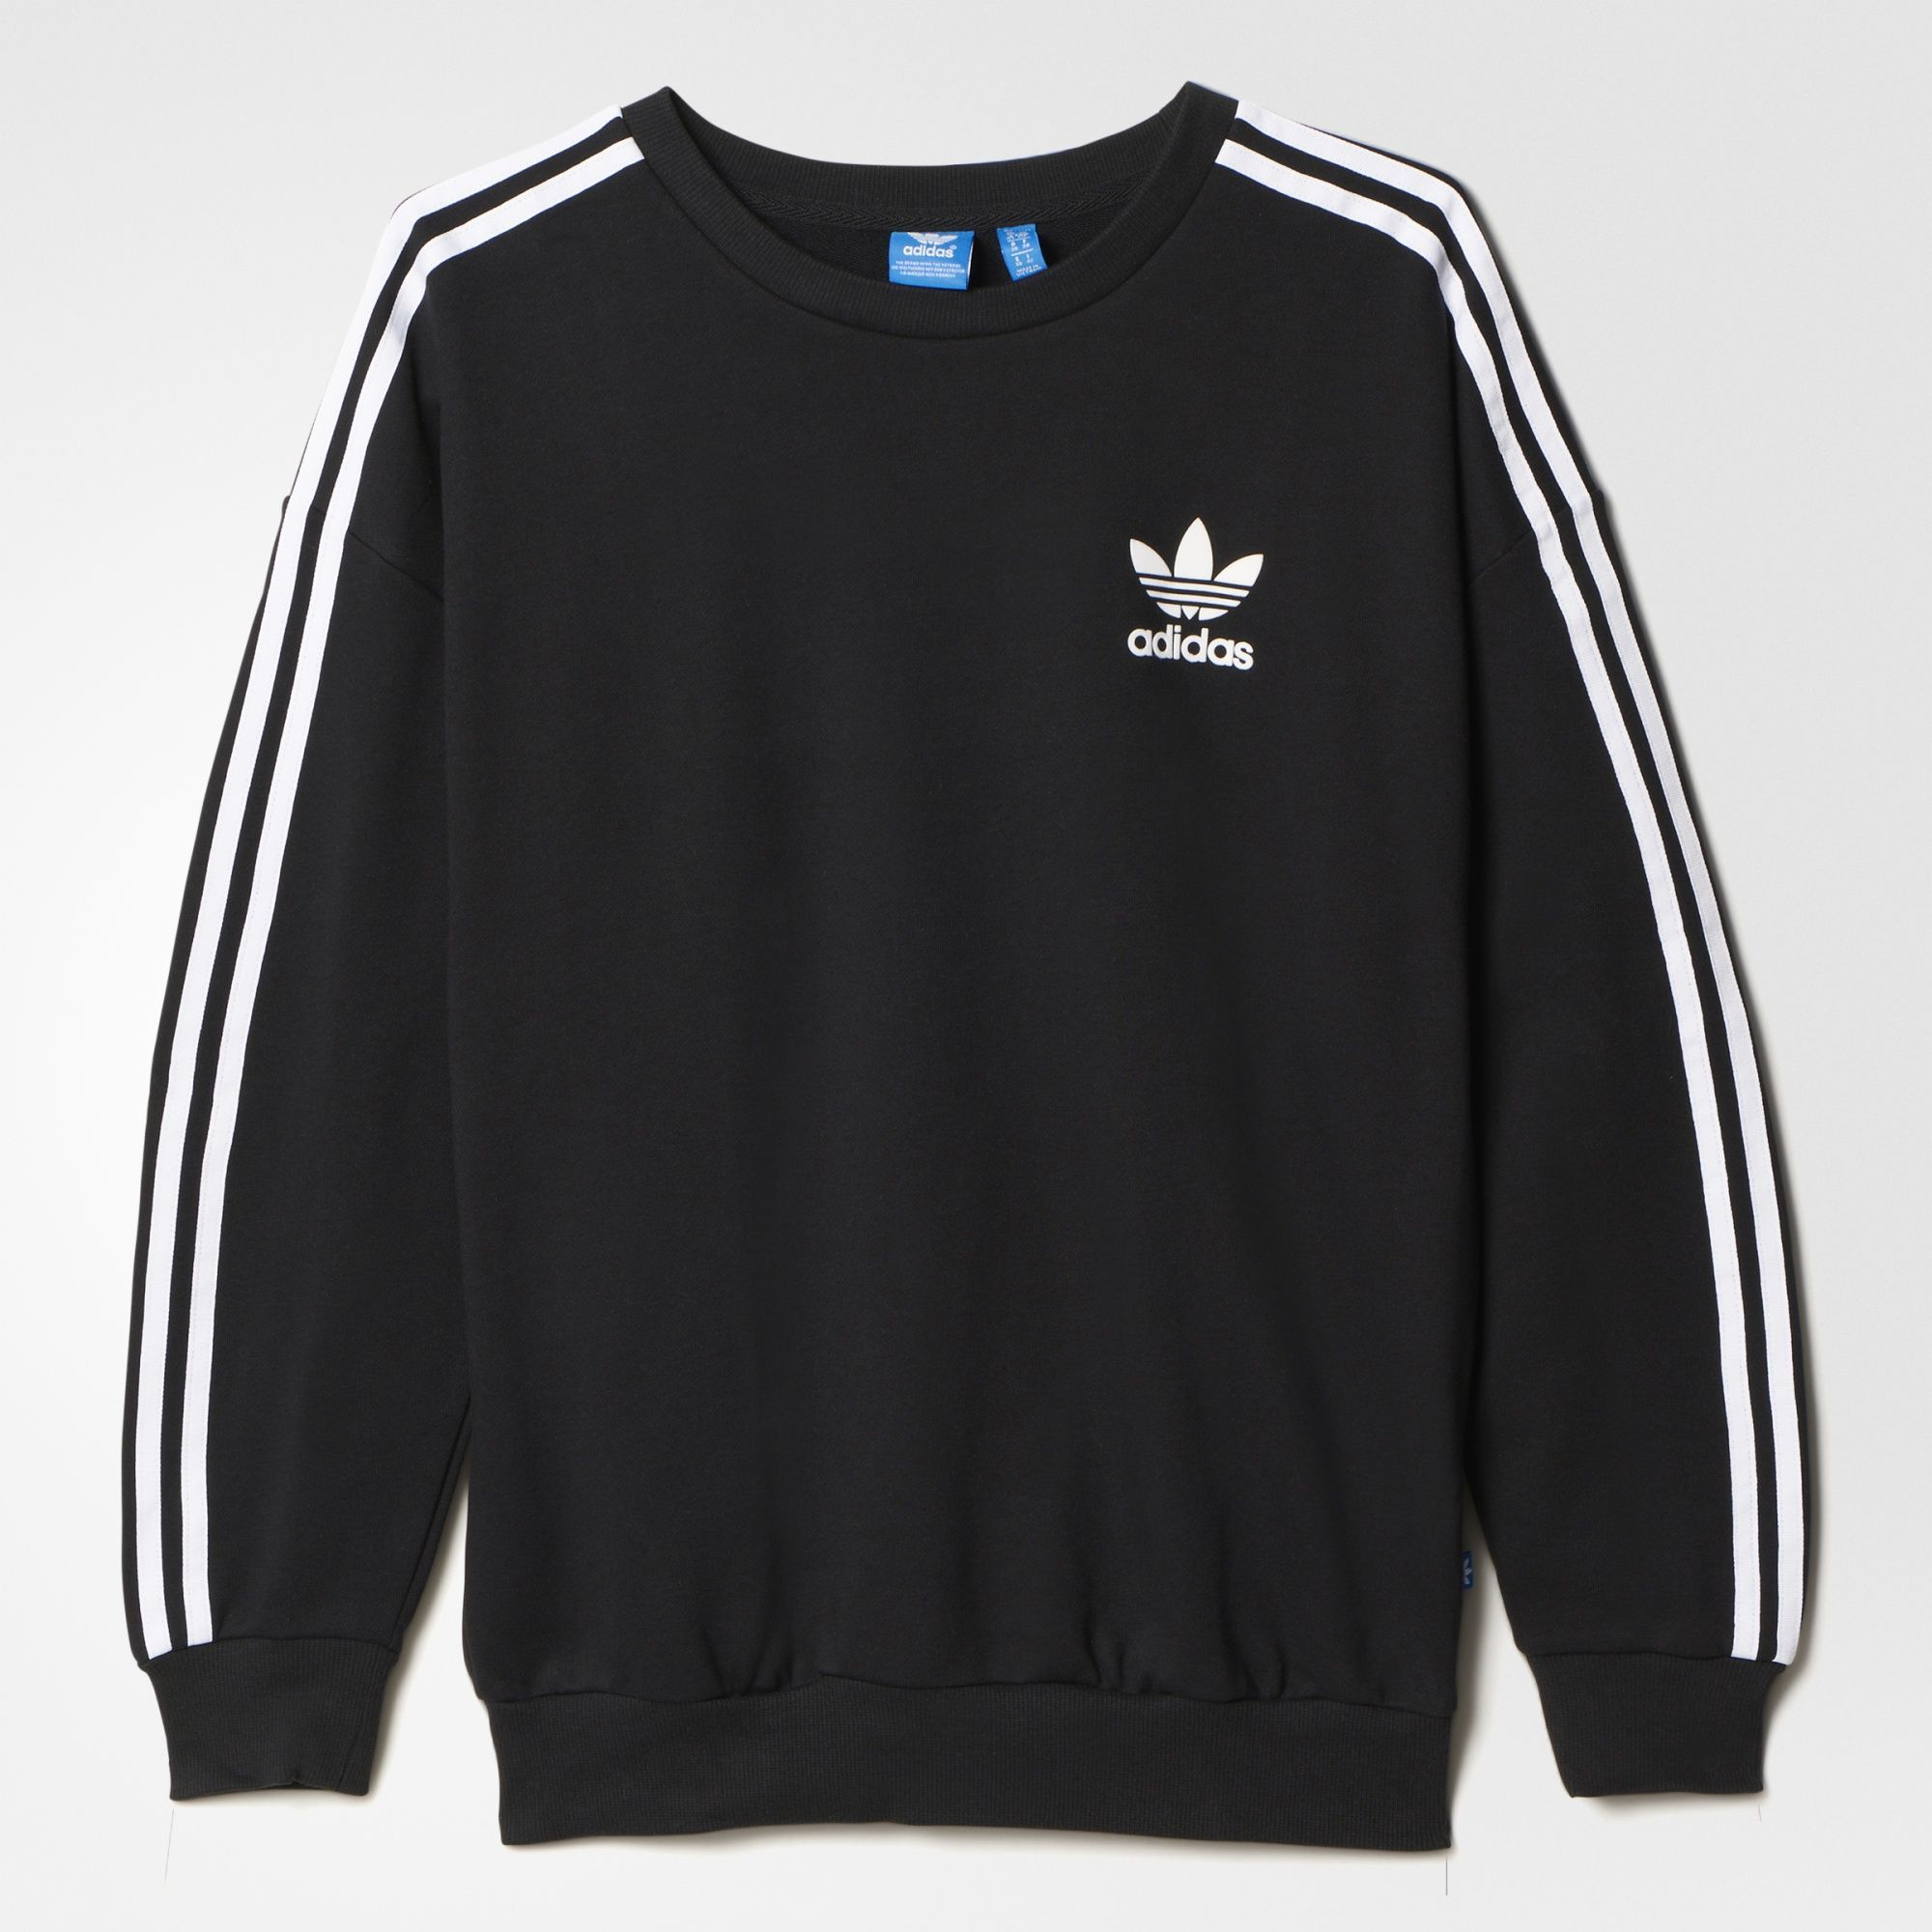 detailed look buying now on feet shots of adidas - 3-Streifen Sweatshirt | shoes & clothes | Adidas ...